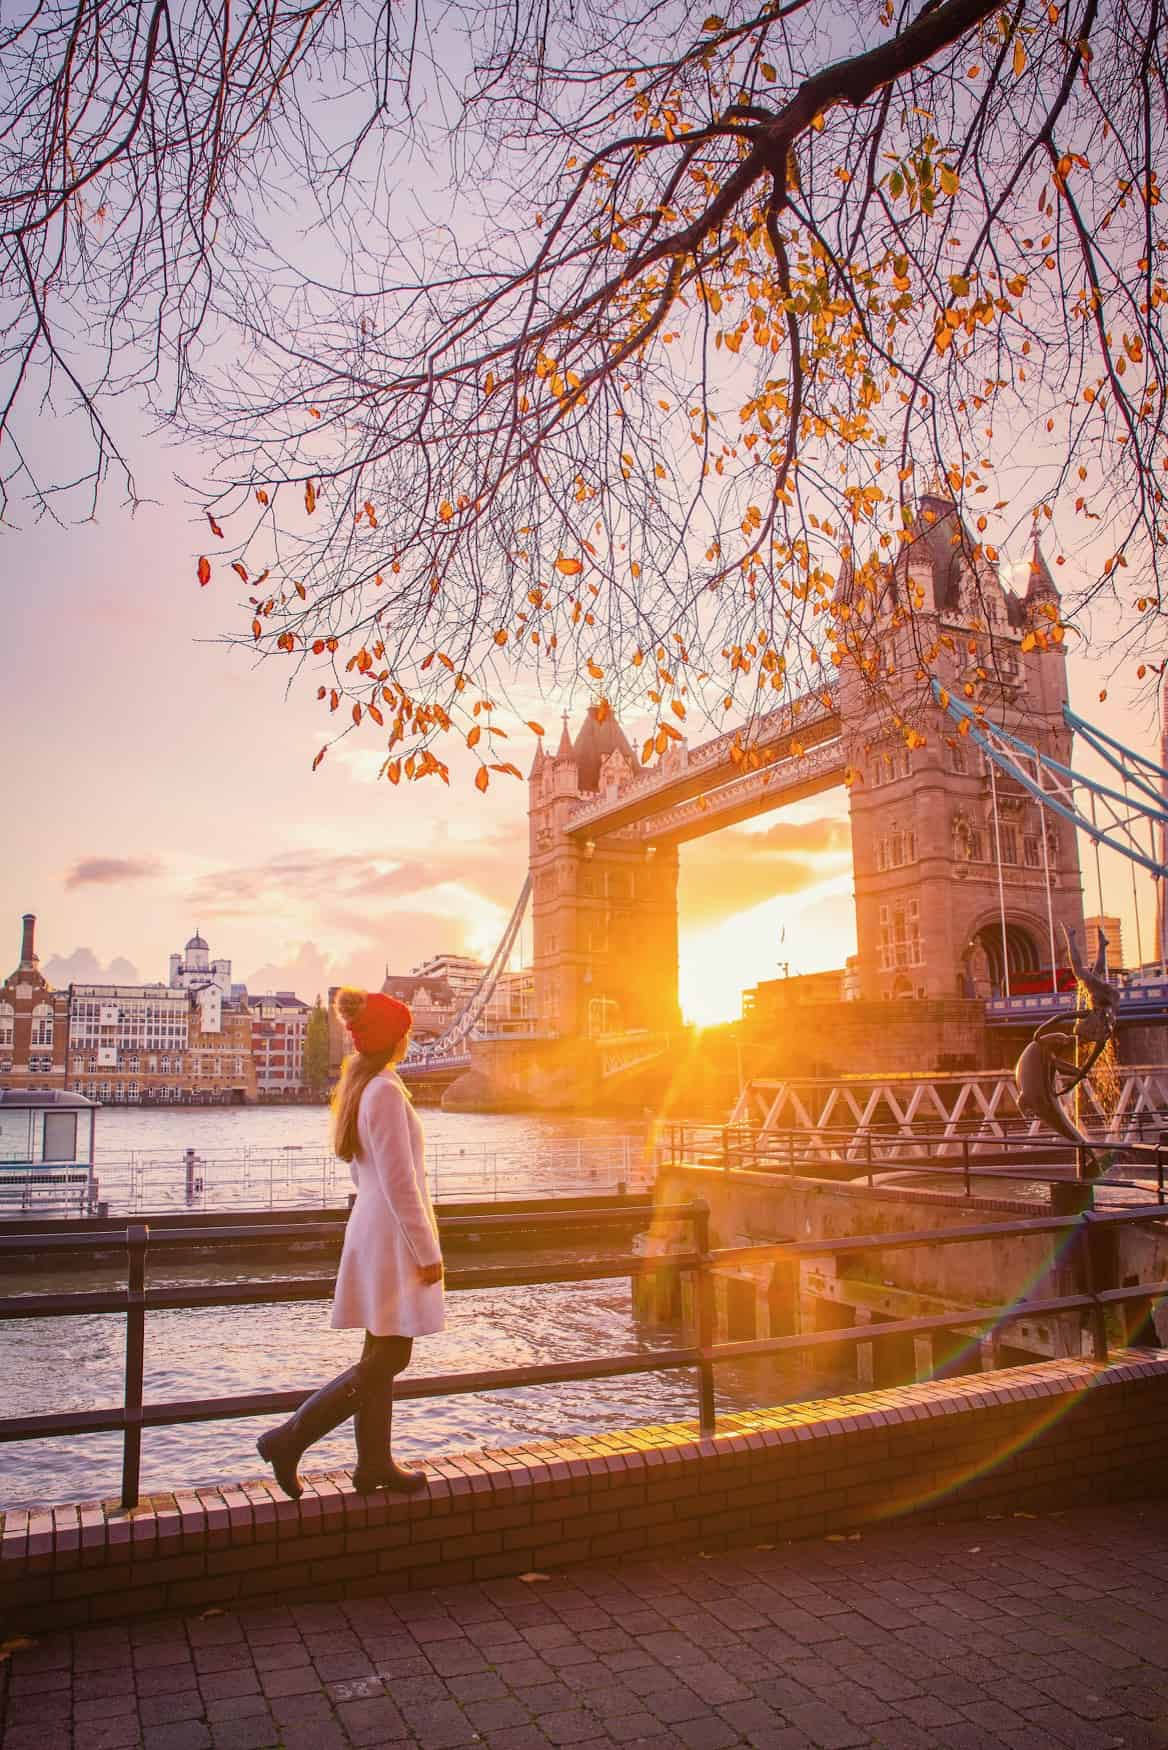 Tower bridge is one of the most Instagrammable places in London